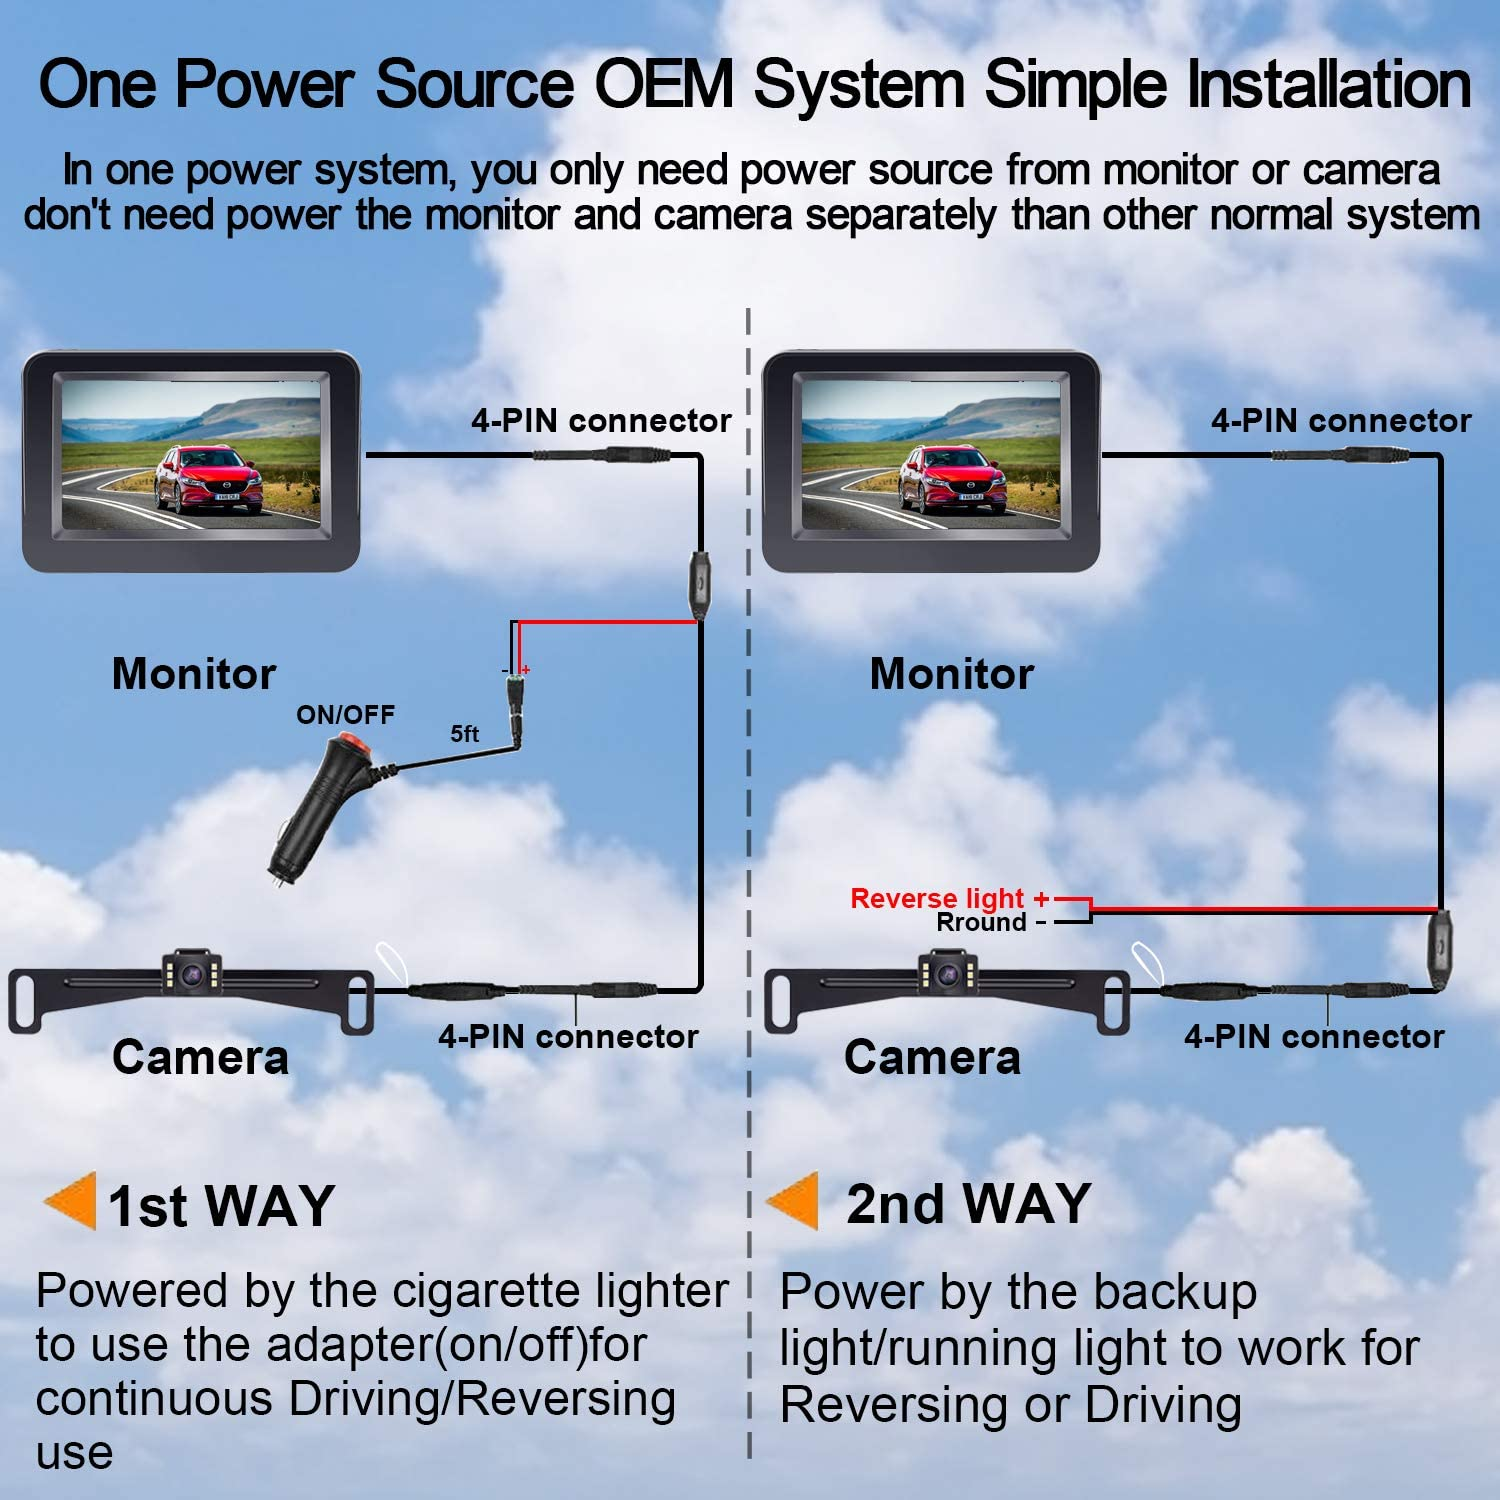 Yarky Y11 HD 720P Backup Camera and Monitor Kit 4.3 Inch Monitor Hitch Rear View License Plate Camera One Power Front View Camera for Cars, Vans, Trucks IP69 Waterproof Super Night Vision